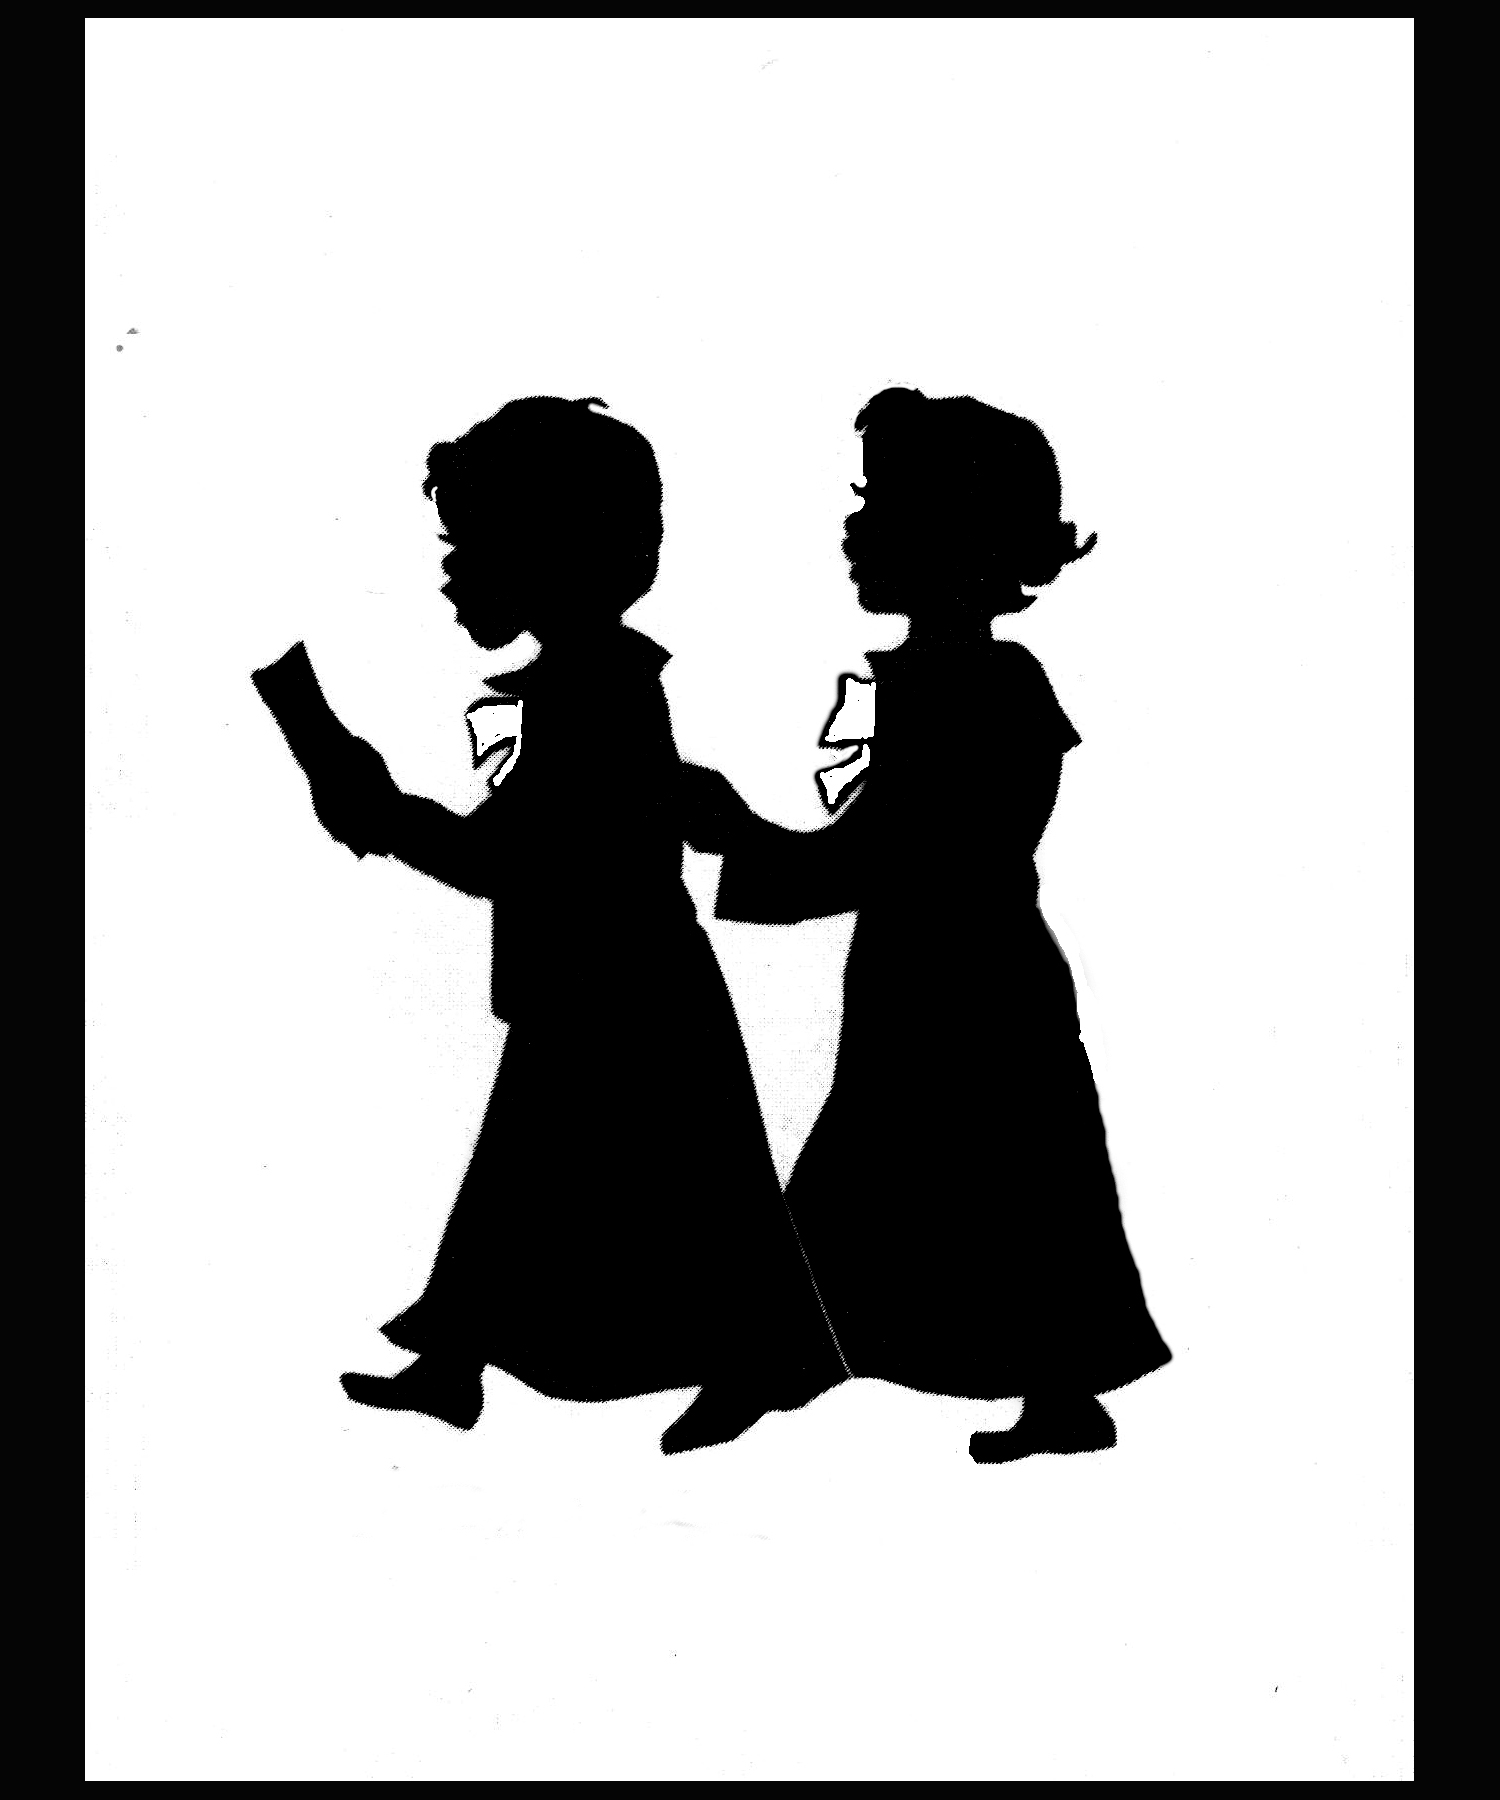 Two Choir Kids Silhouette